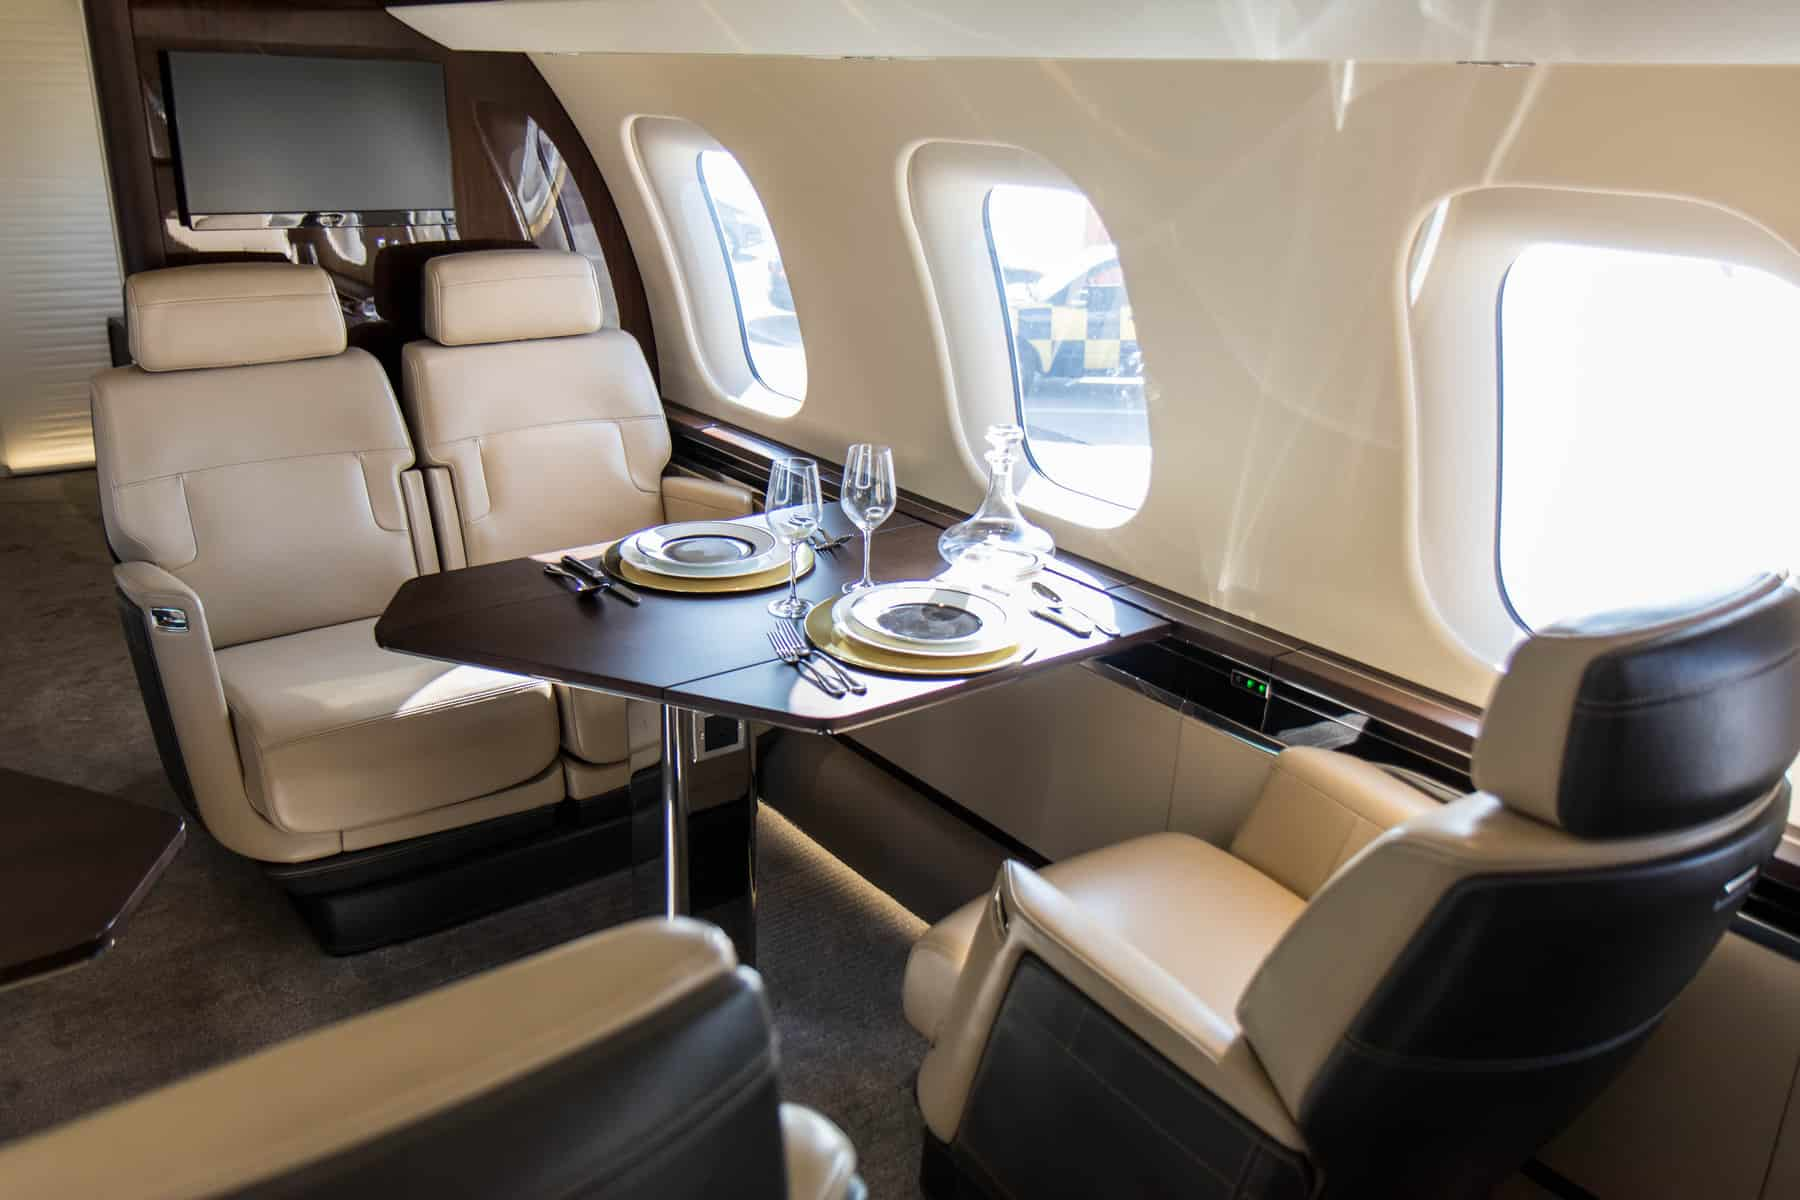 Bombardier Global 7500 nuage seats